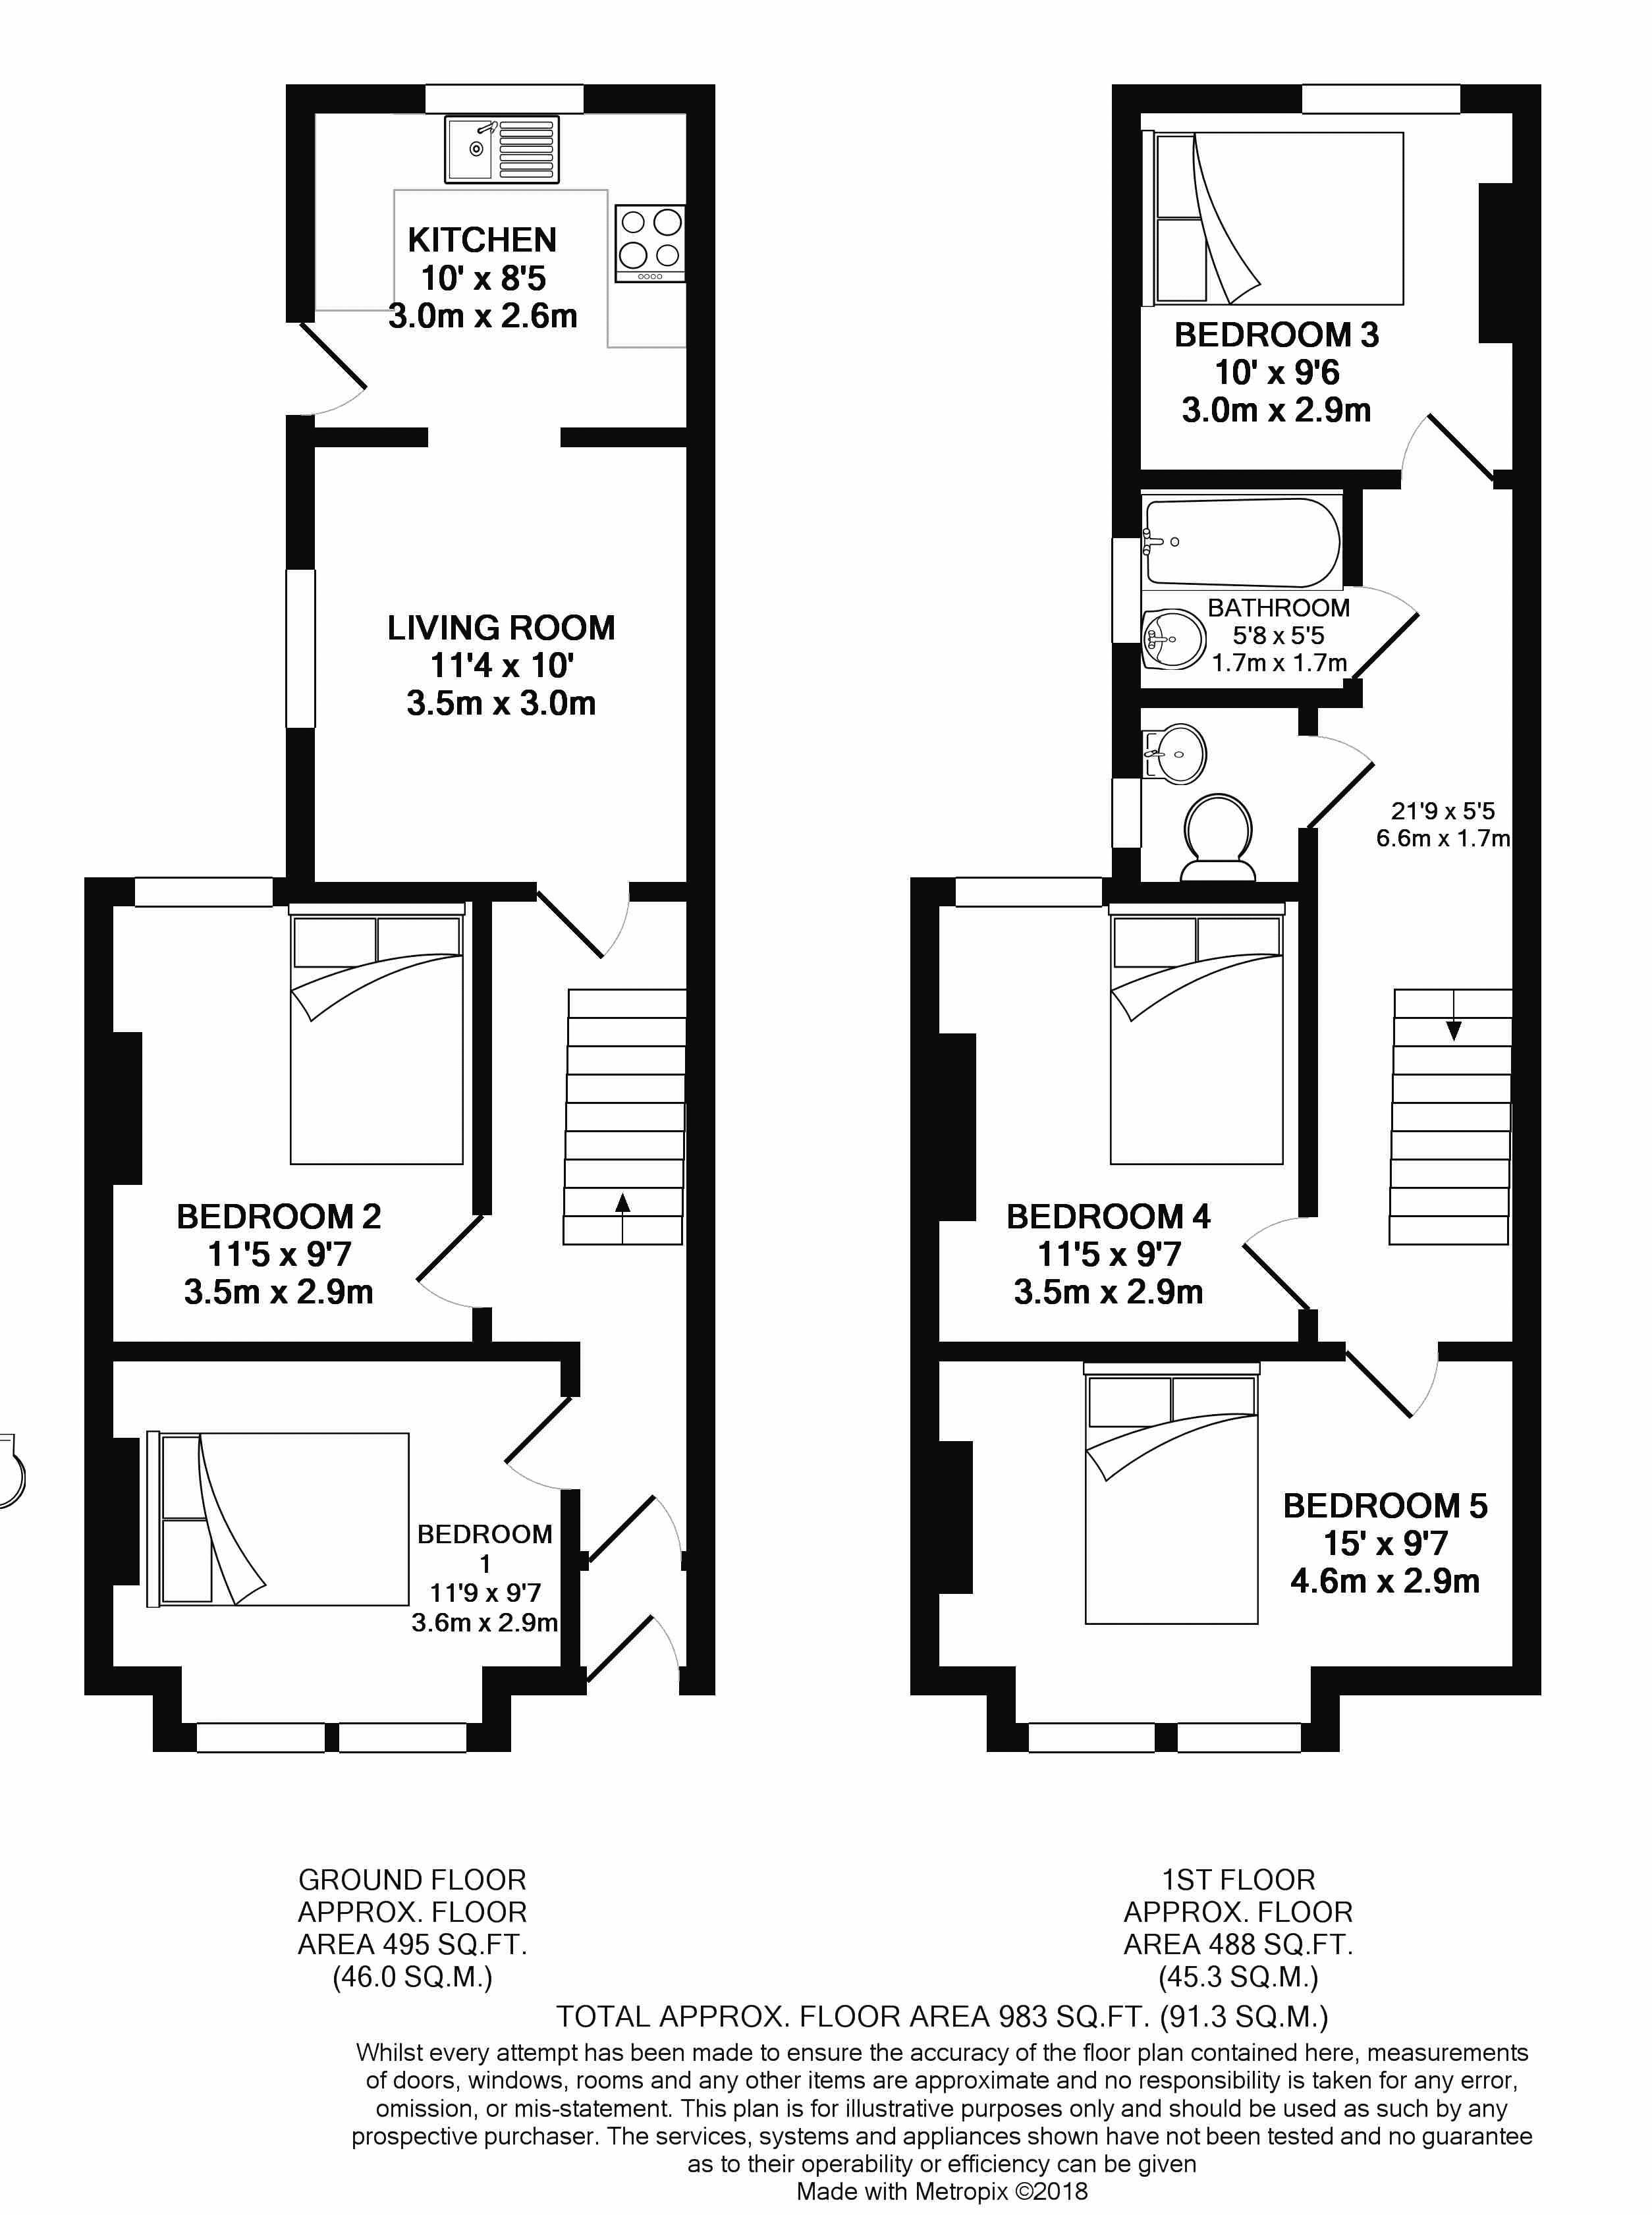 Floor plans for Whippingham Road, Brighton property for sale in Lewes Road South, Brighton by Coapt